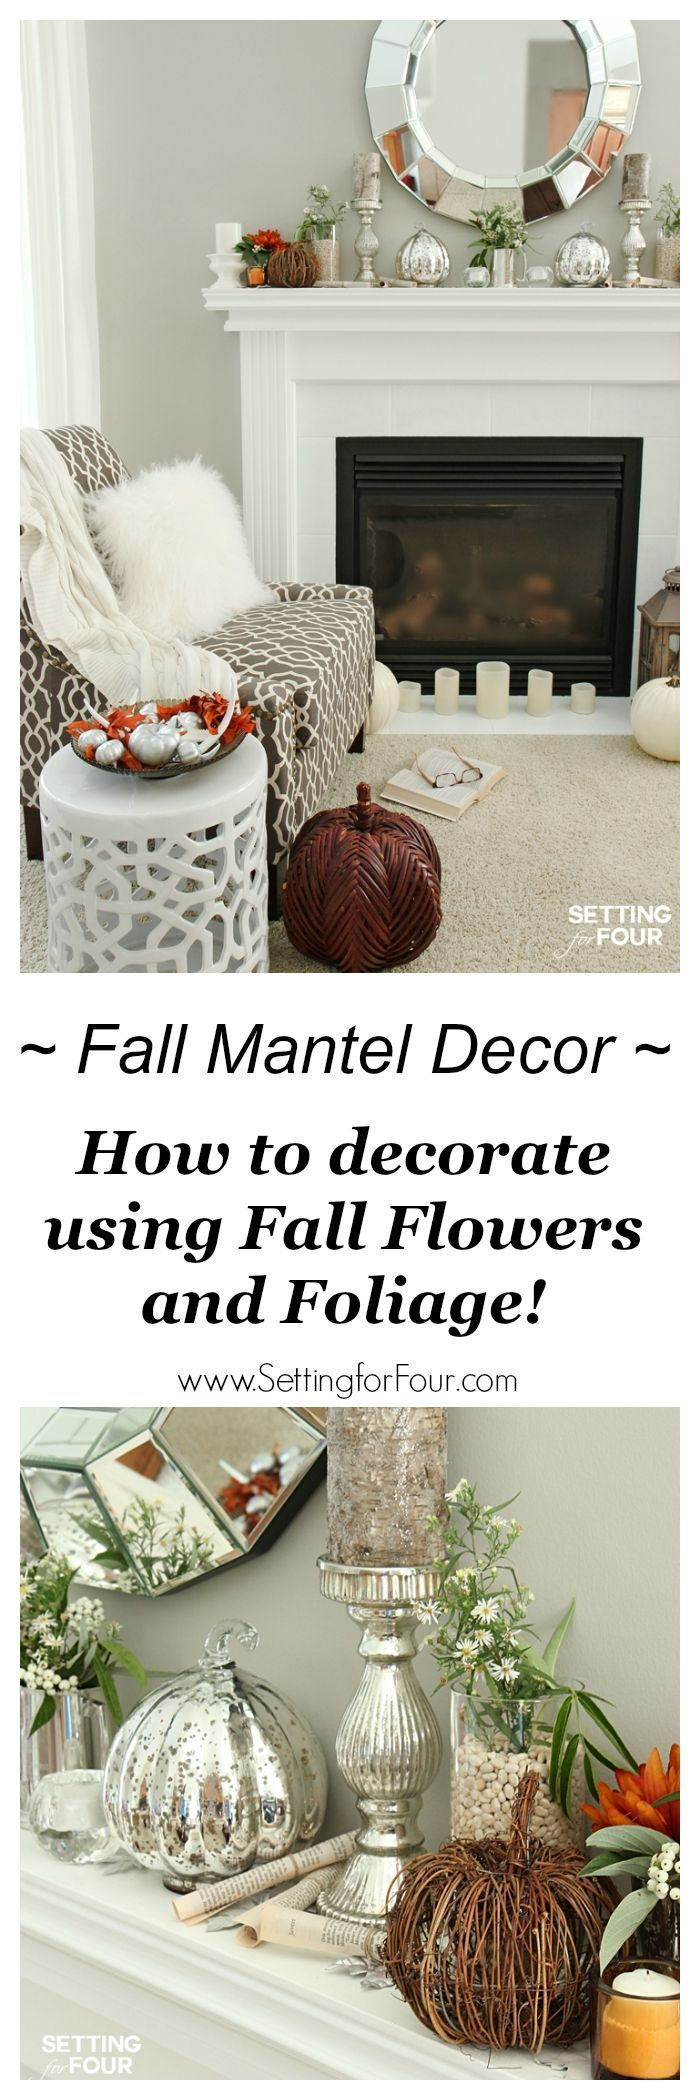 How to decorate with natural elements, fall flowers and foliage. Love this look? See my Fall mantel decor ideas using here! Bring fall into your home! www.settingforfour.com